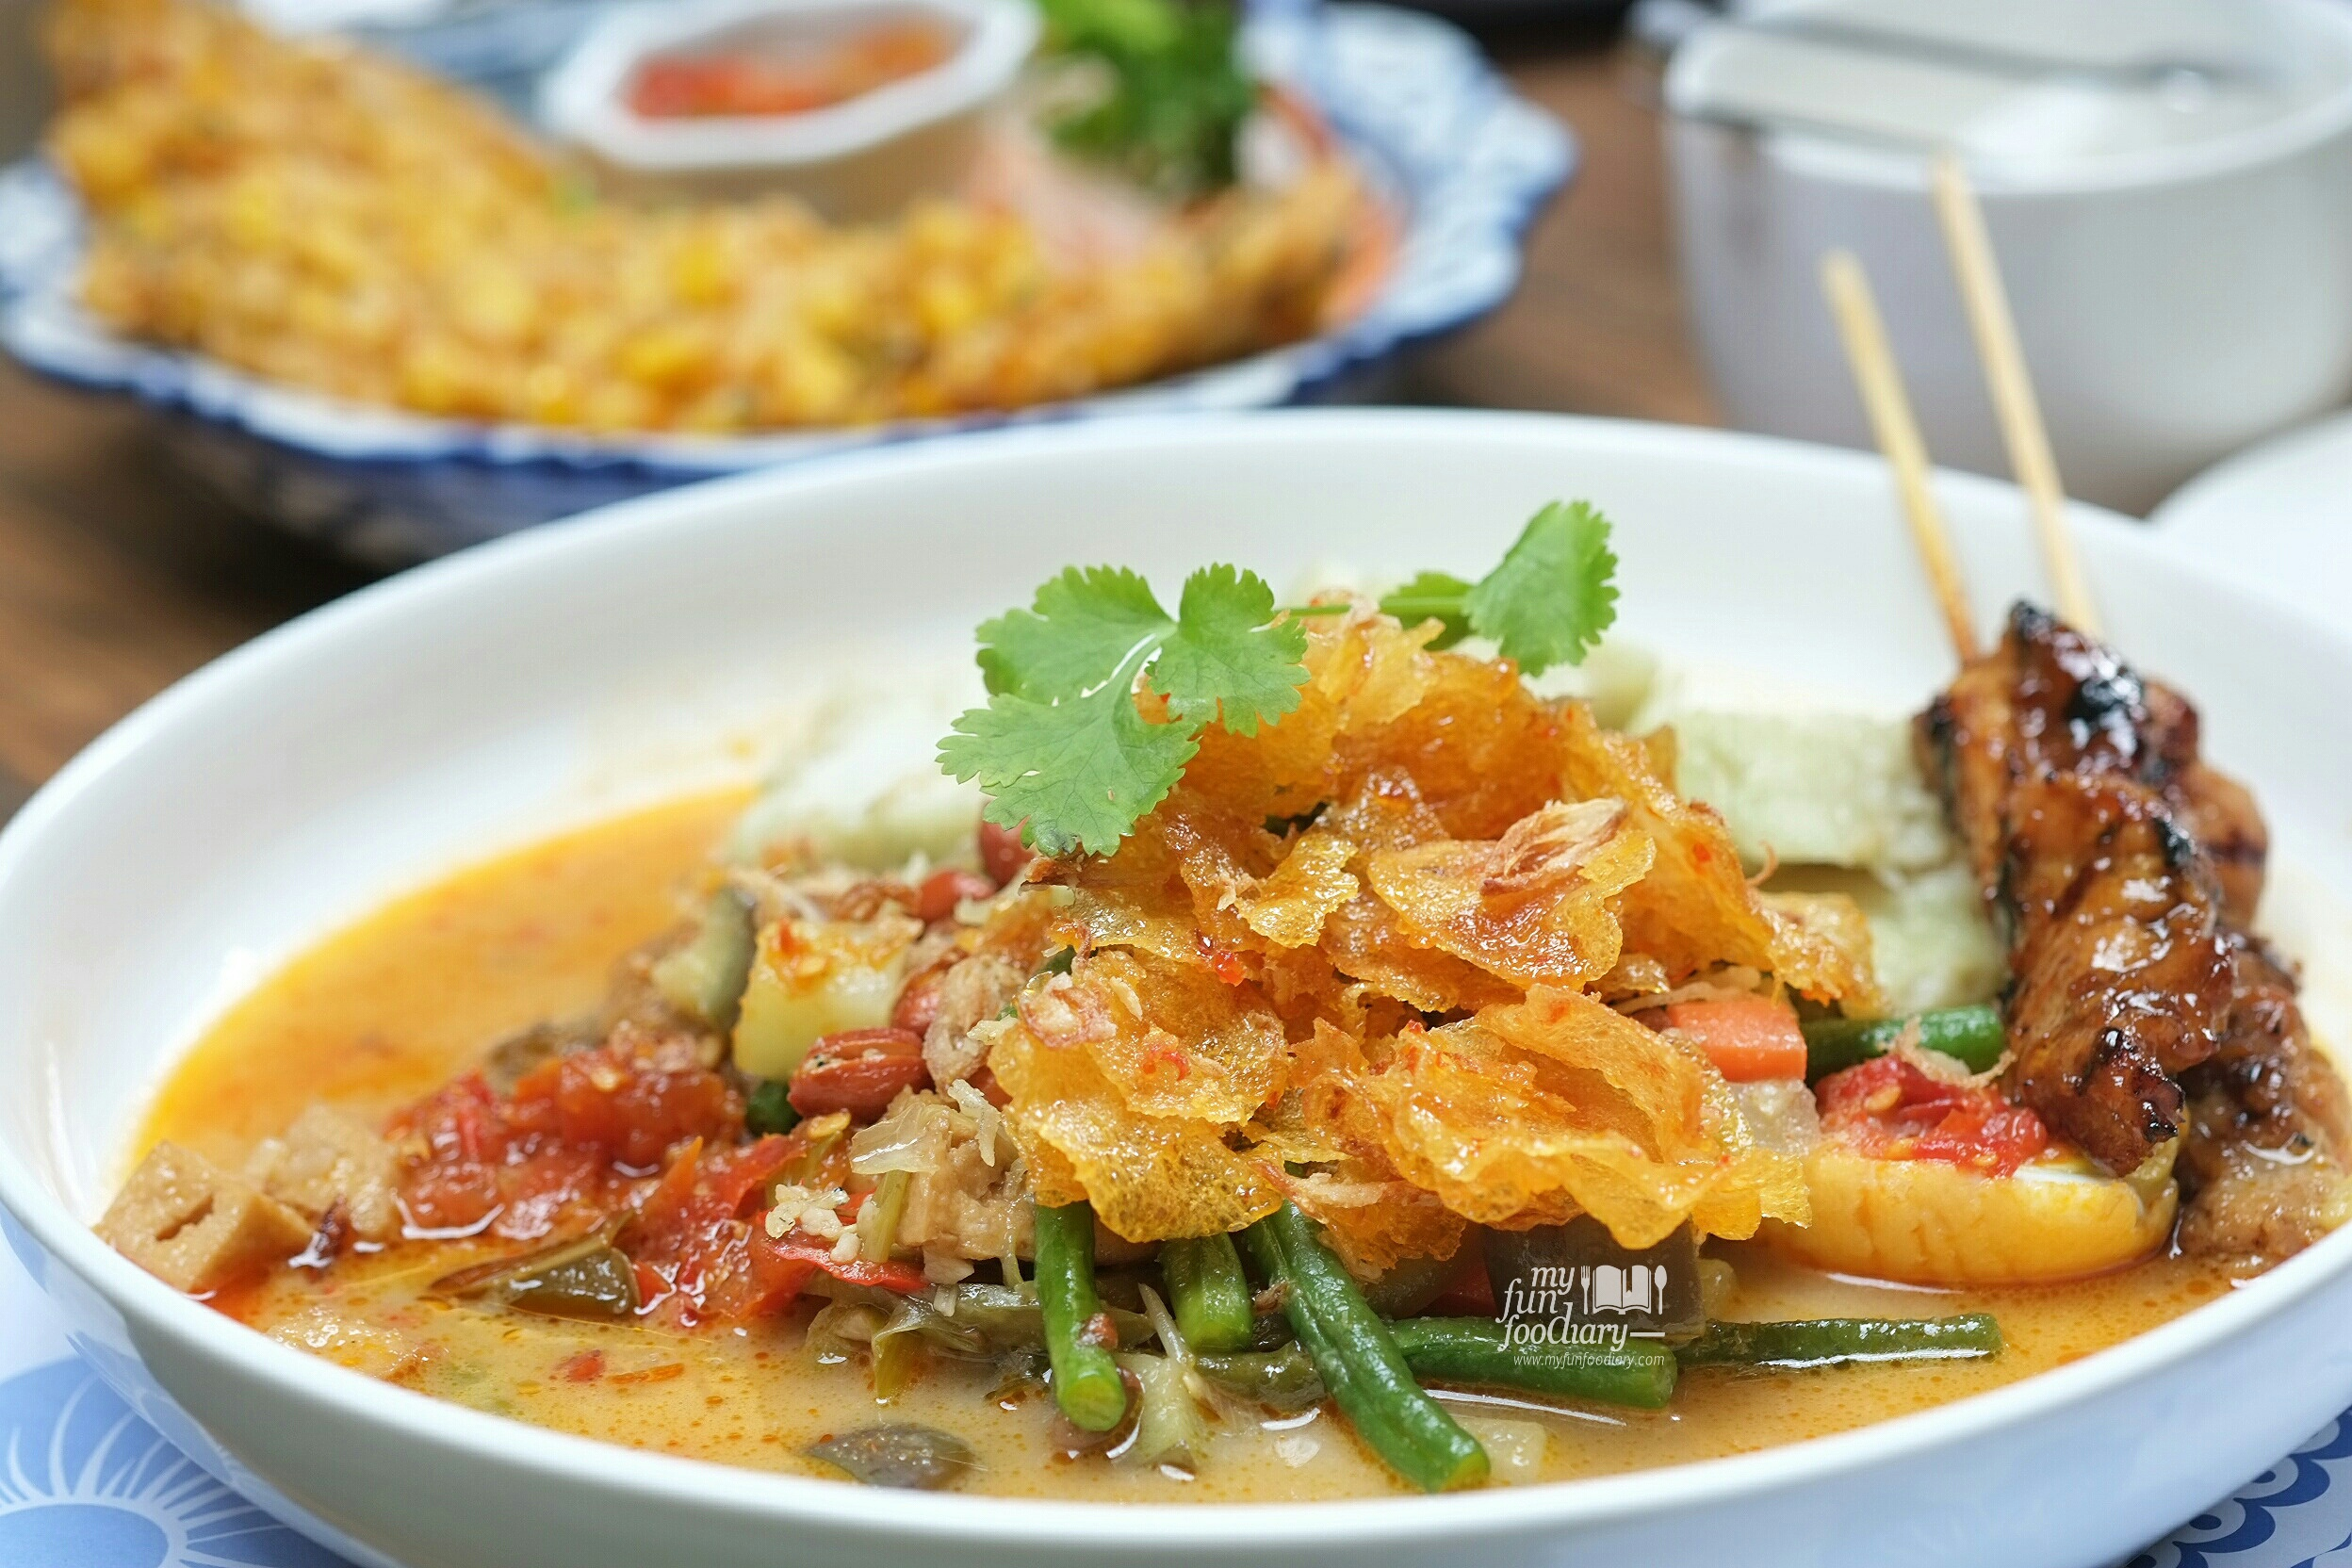 New spot delicious indo orient cuisine lunch at blue for Jasmine cuisine